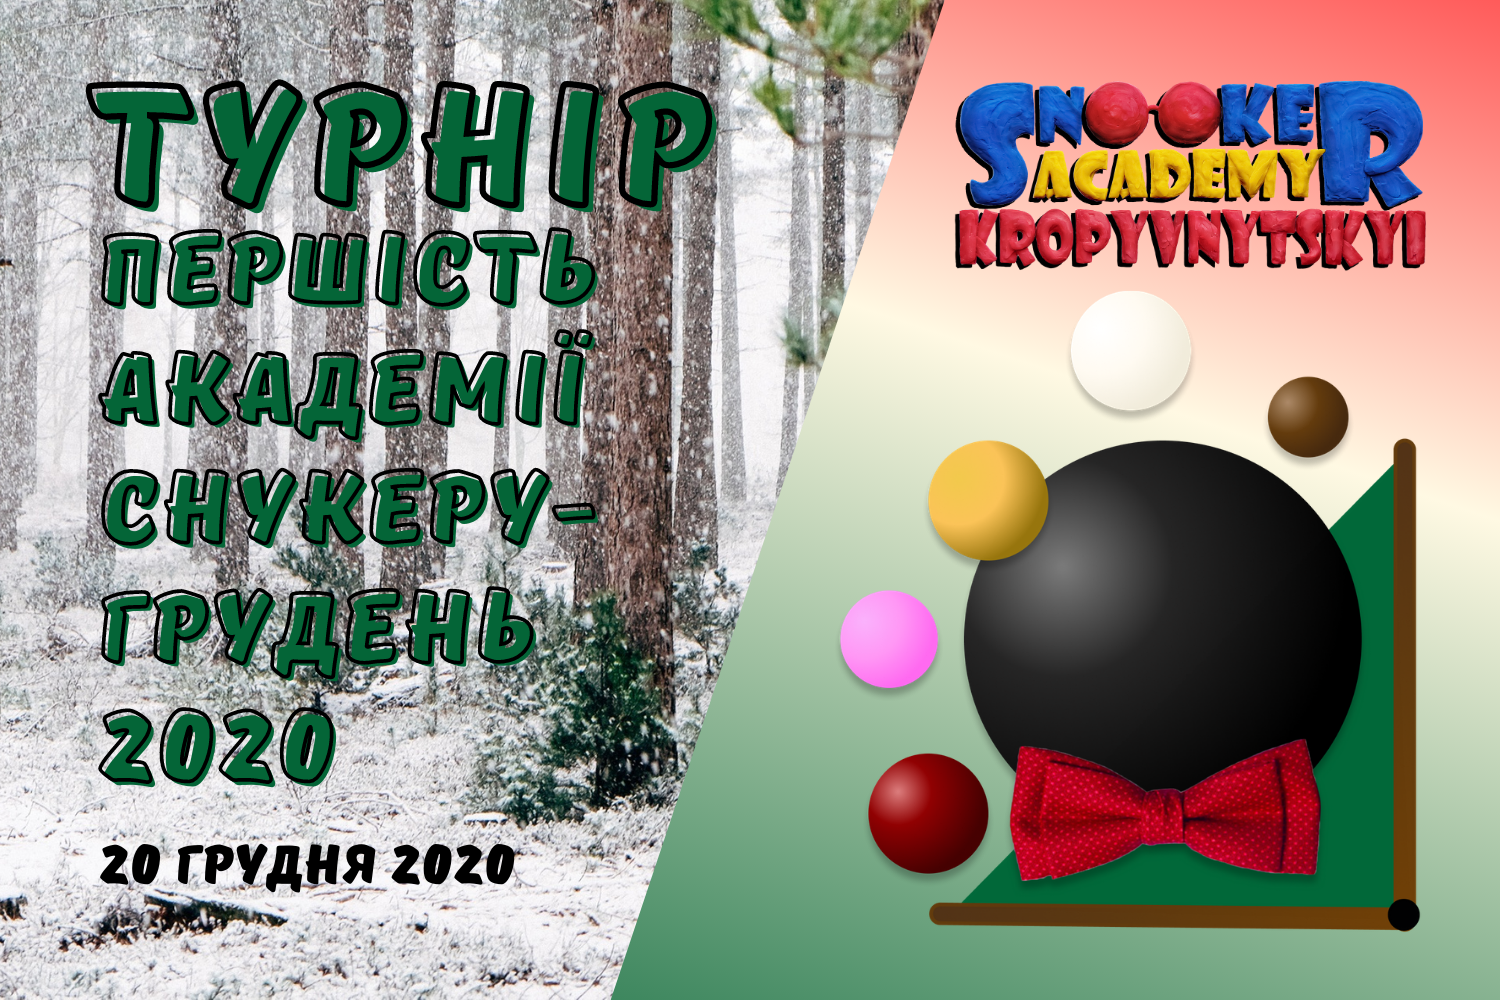 Kropyvnytskyi Snooker Academy Tournament - december 2020